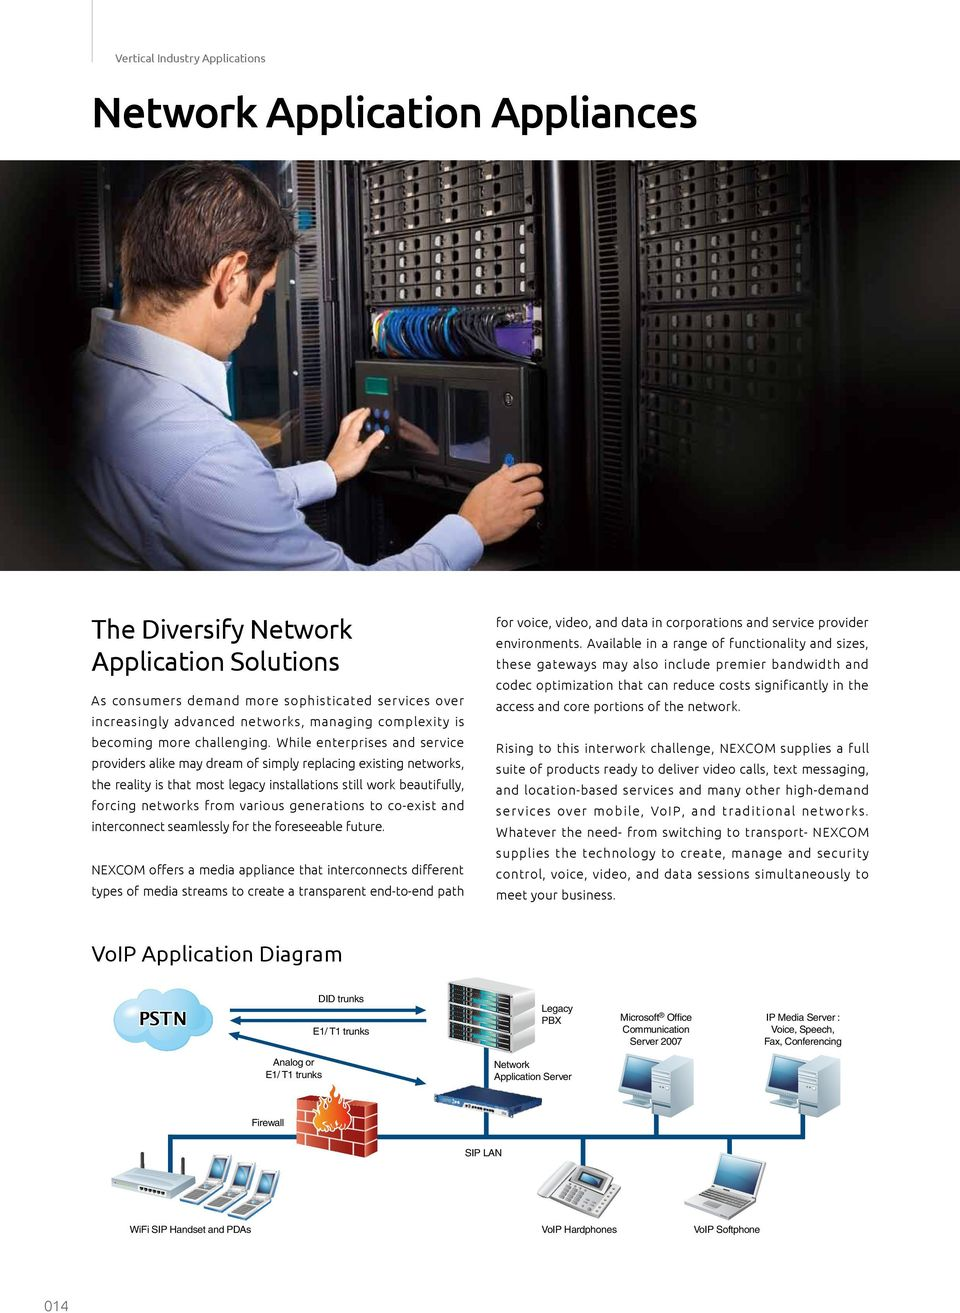 While enterprises and service providers alike may dream of simply replacing existing networks, the reality is that most legacy installations still work beautifully, forcing networks from various